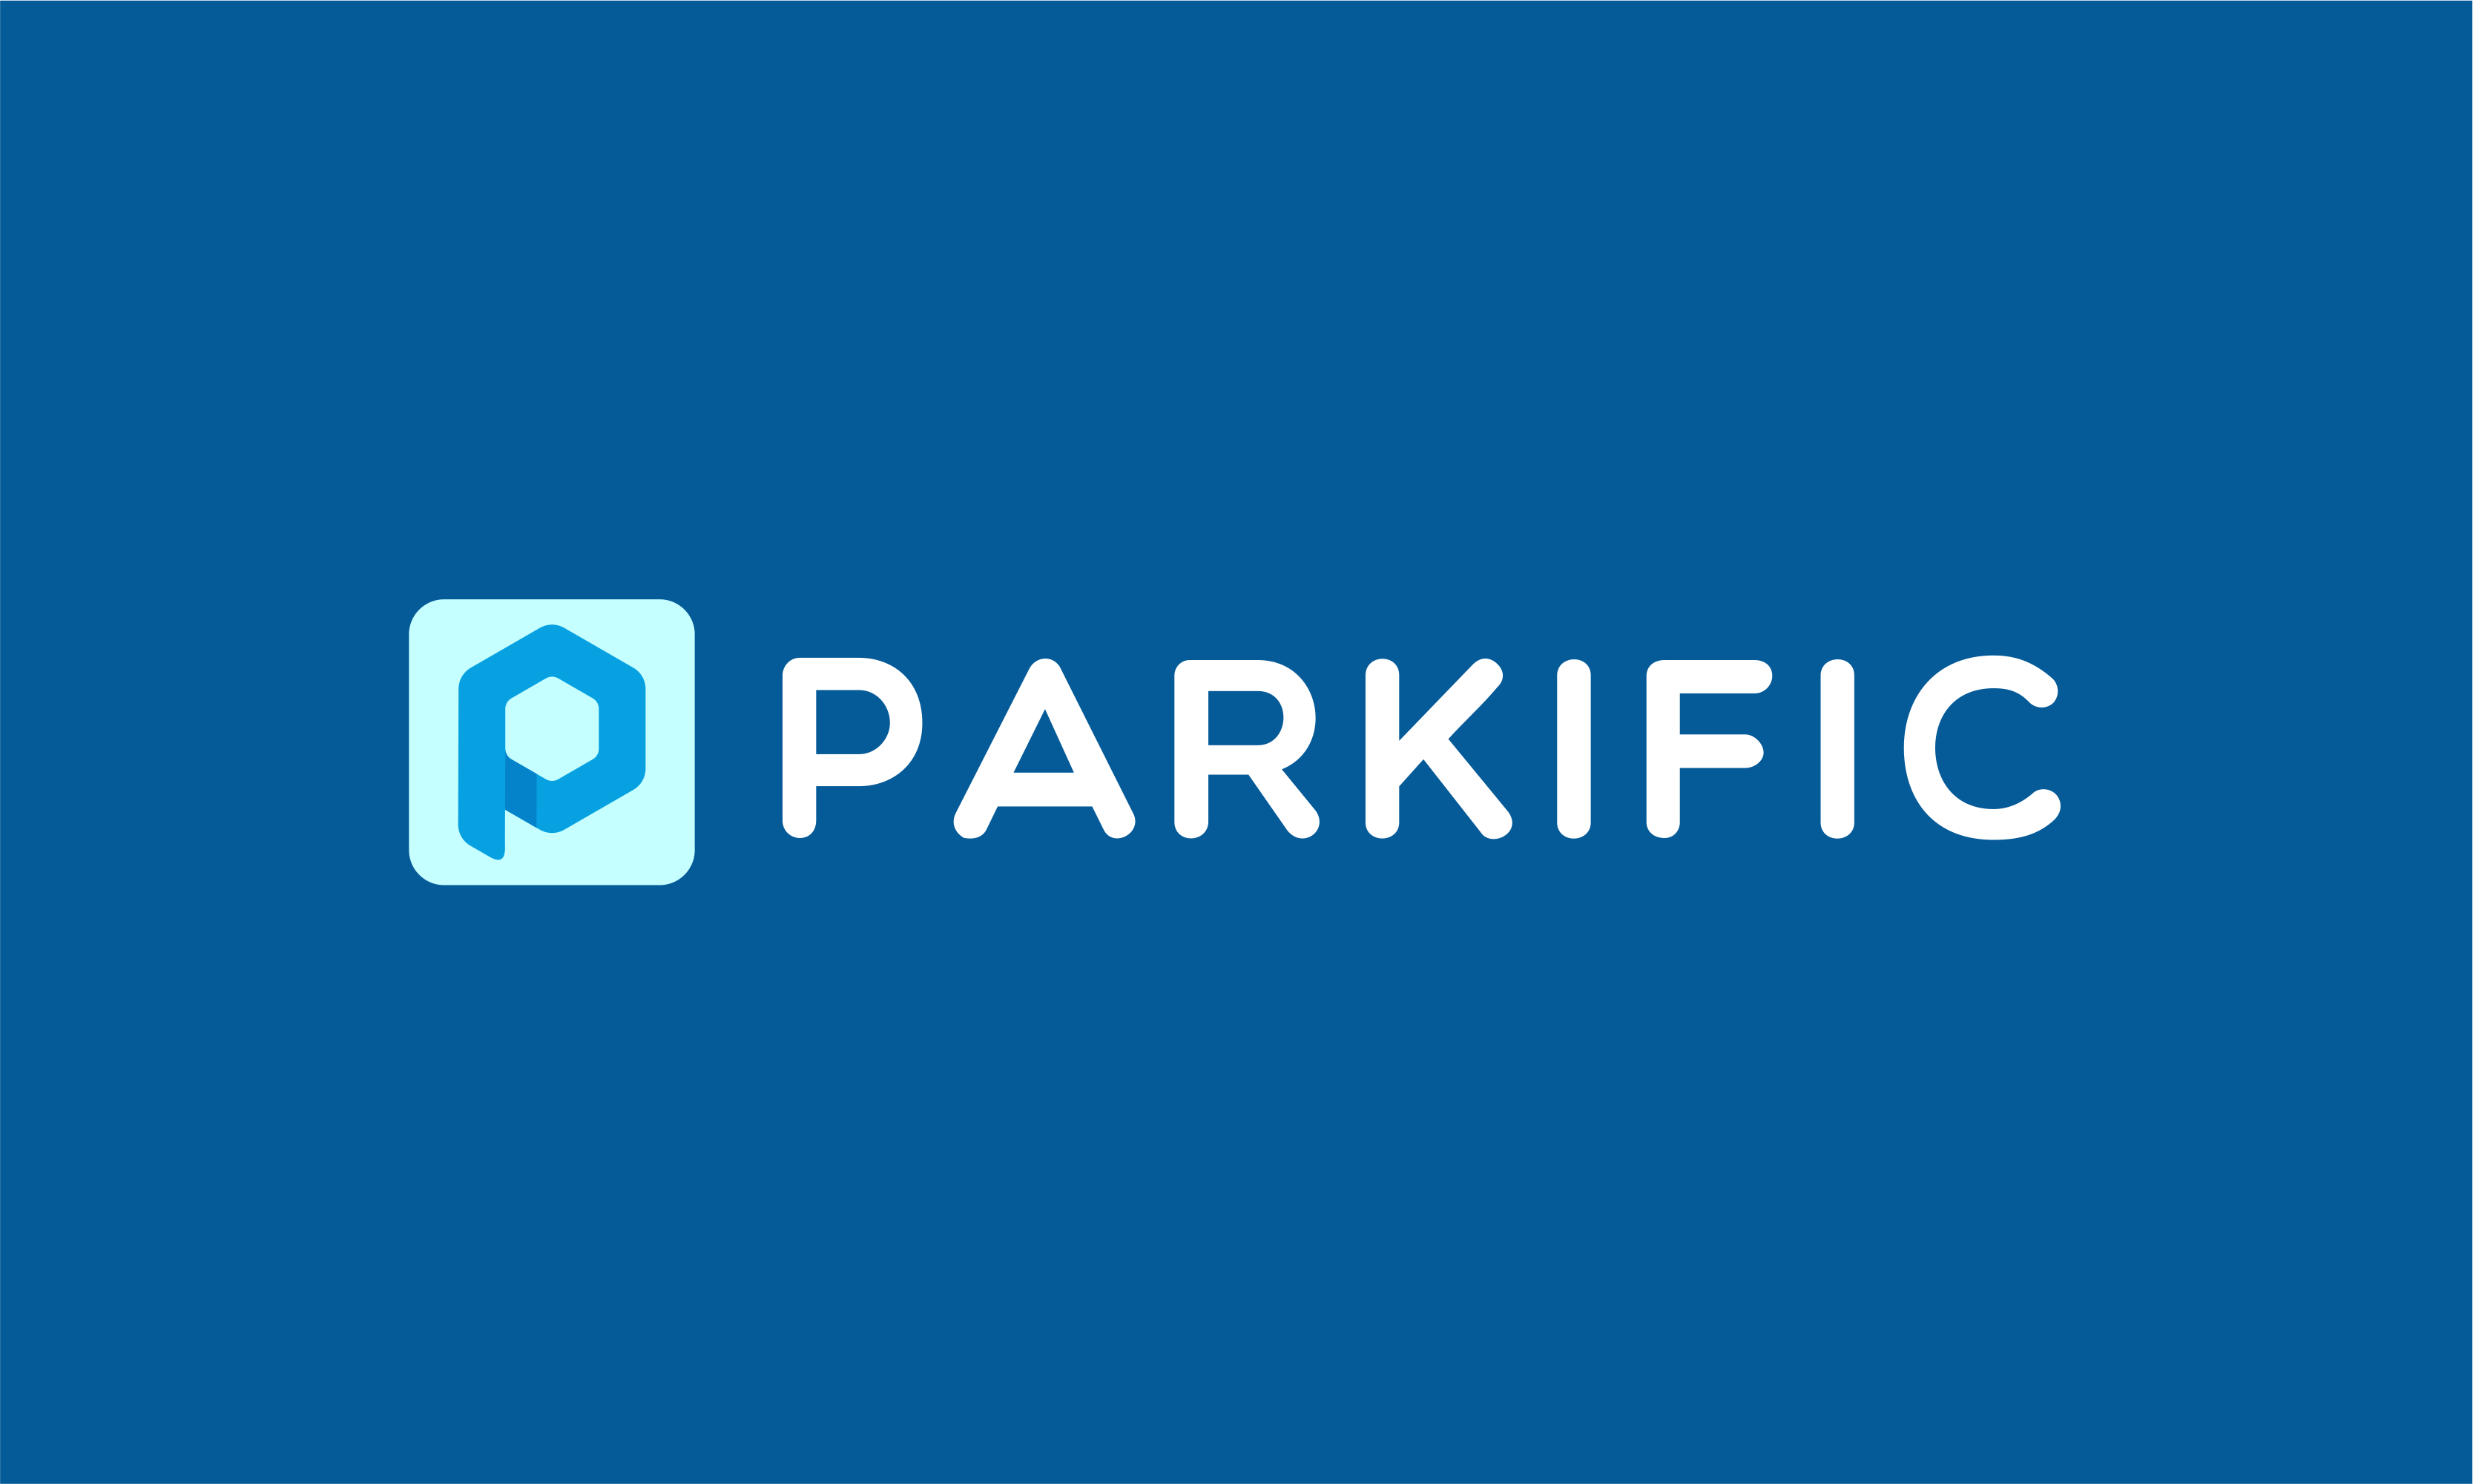 Parkific - Reviews business name for sale